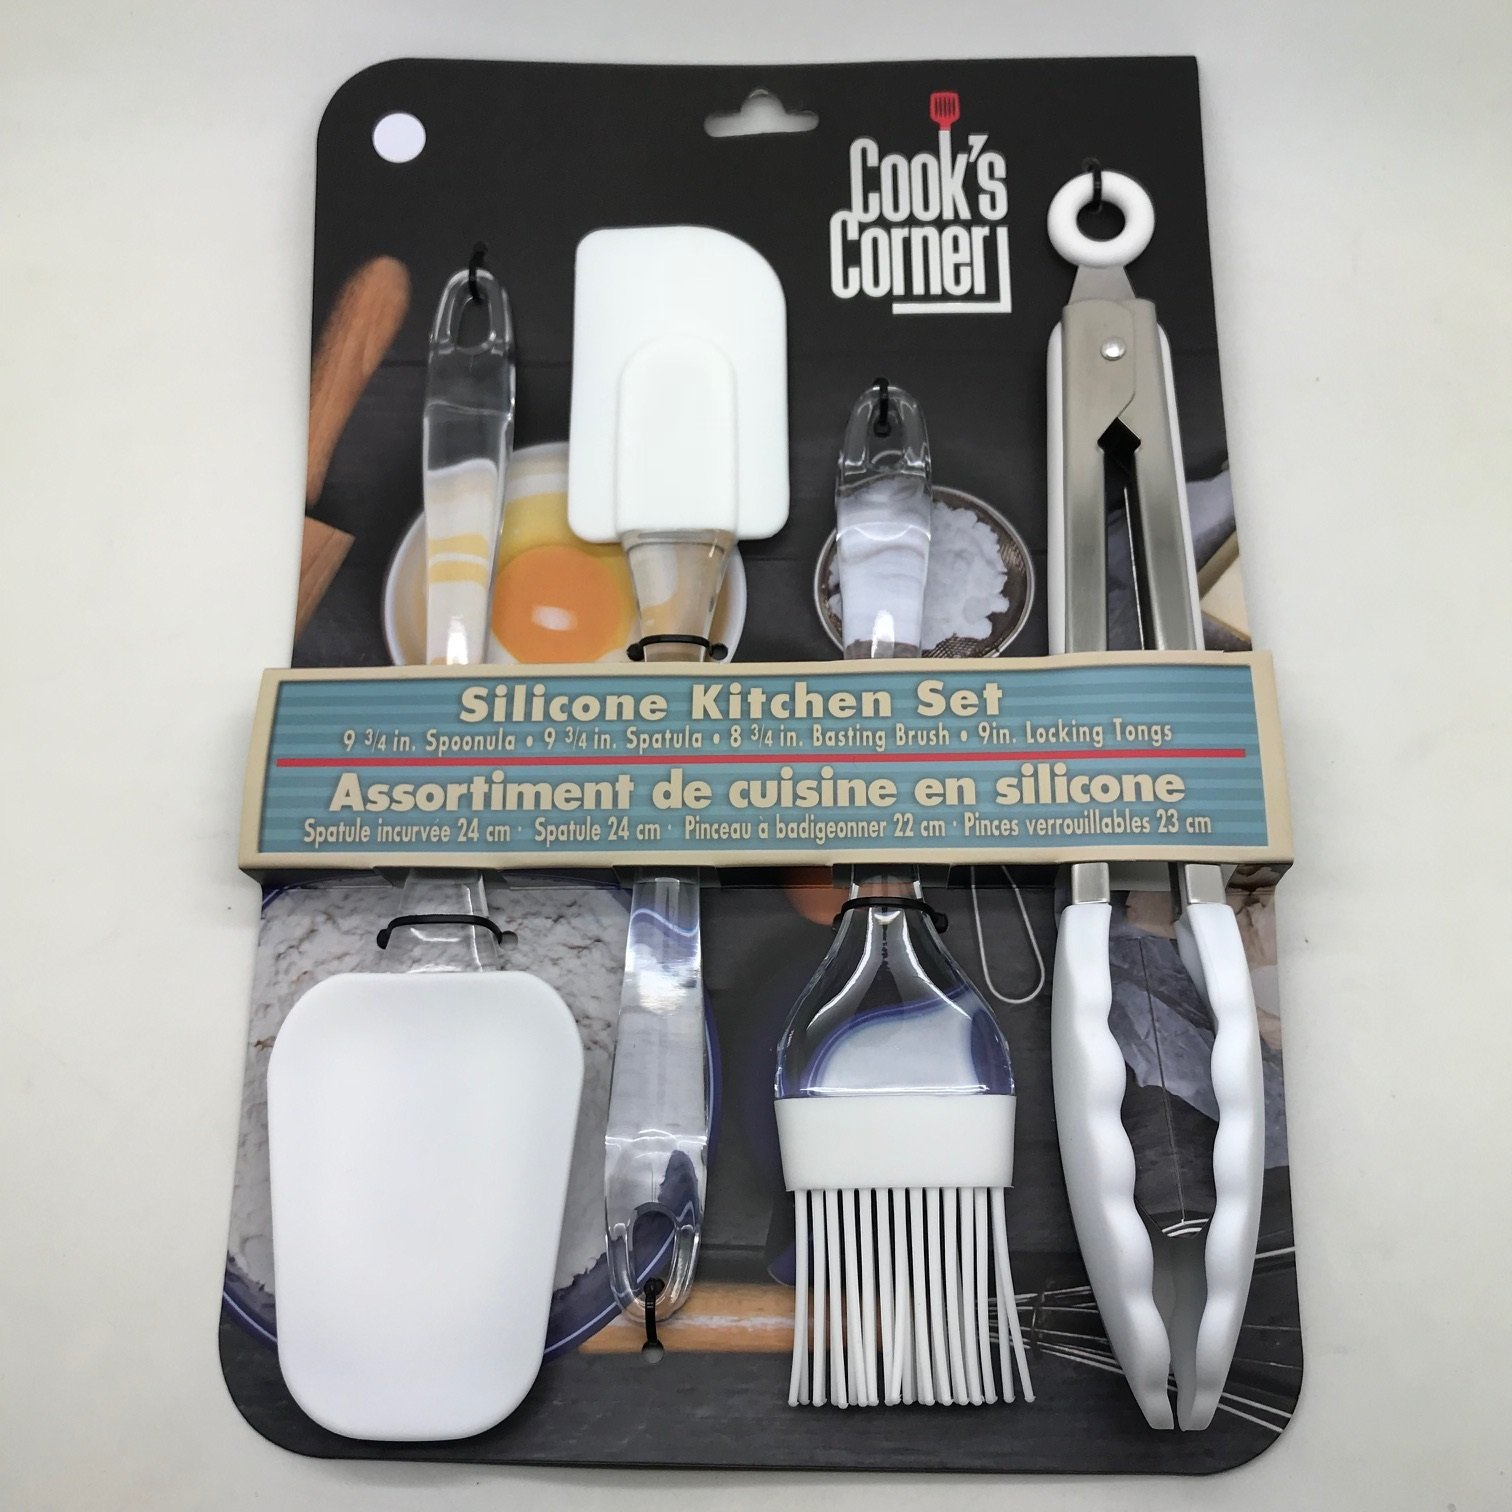 Cook's Corner 4-Piece Silicone Kitchen Tool Set (White) by Cook's Corner (Image #1)